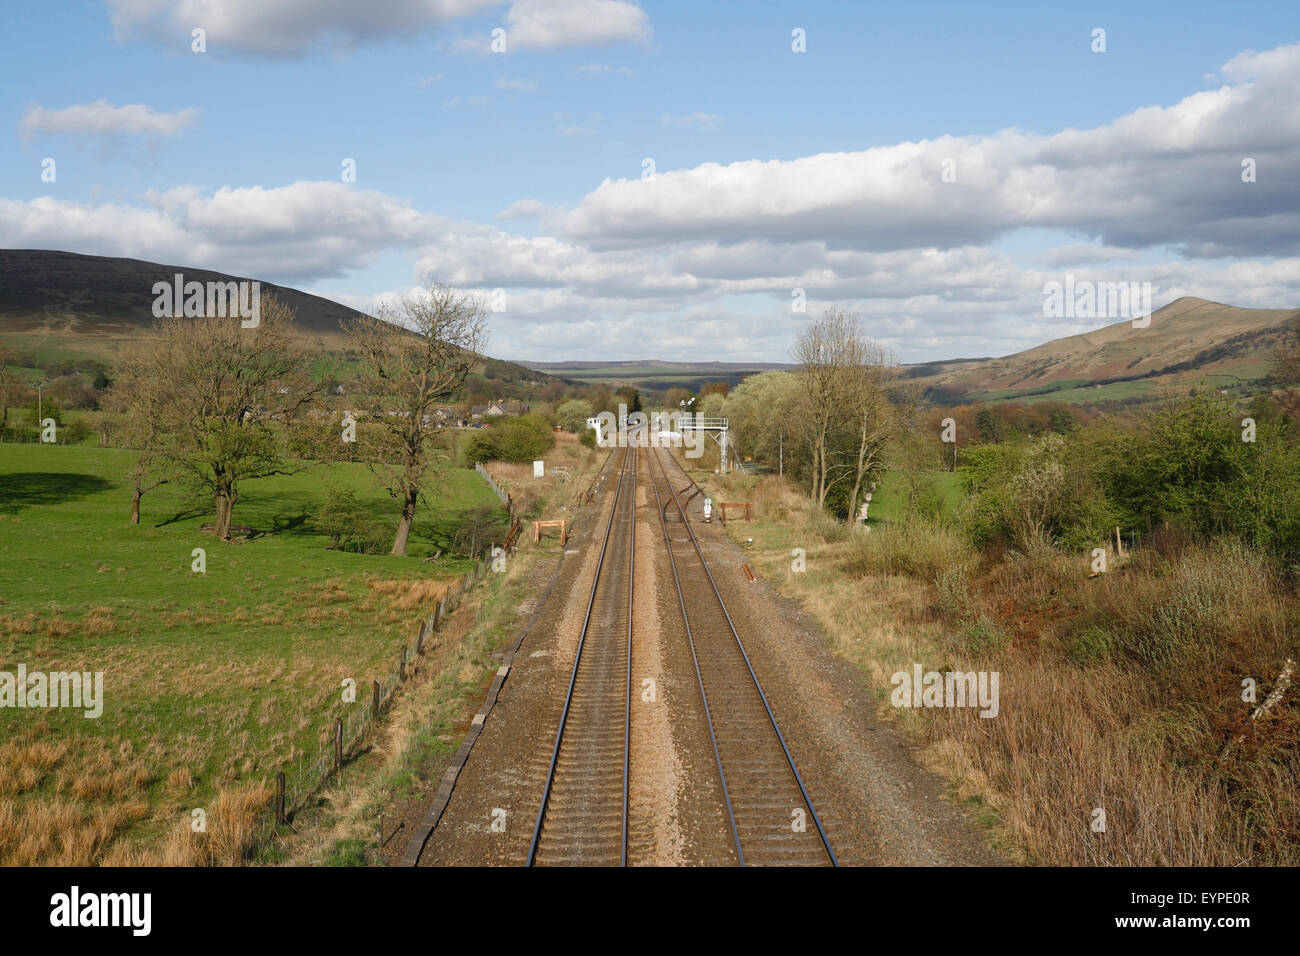 Railway line looking towards Edale in the Peak District National Park England UK - Stock Image